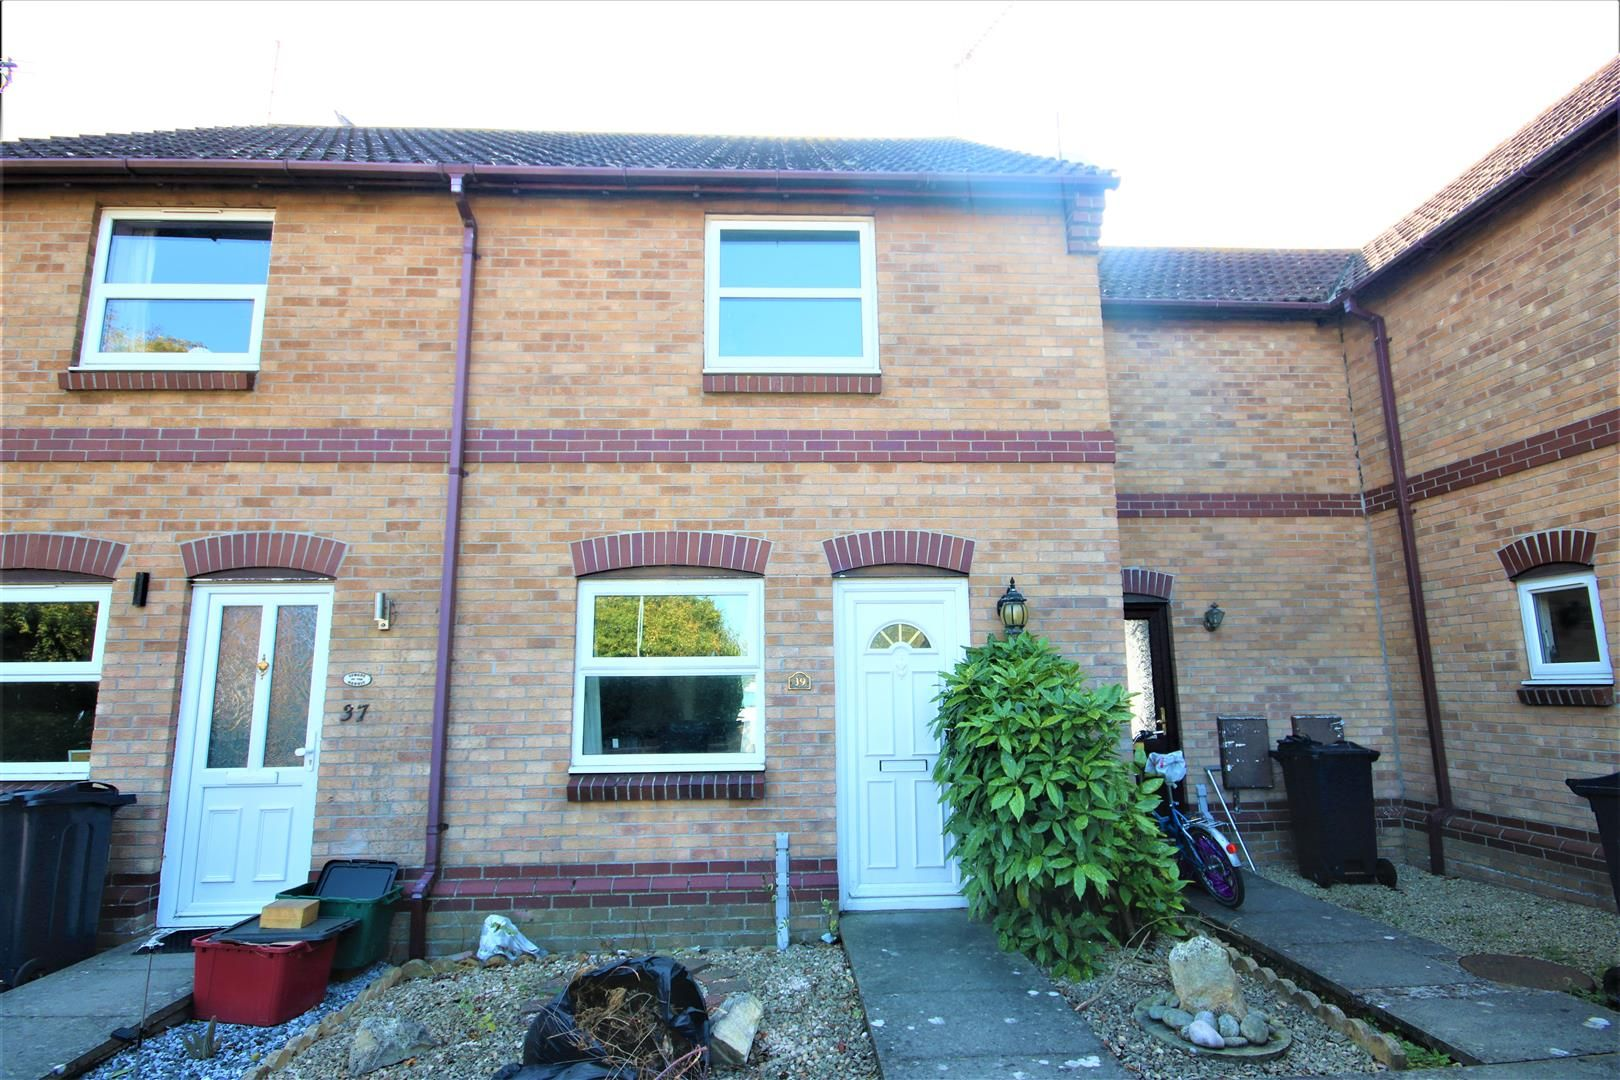 Property photo 1 of 9. Outside - Front